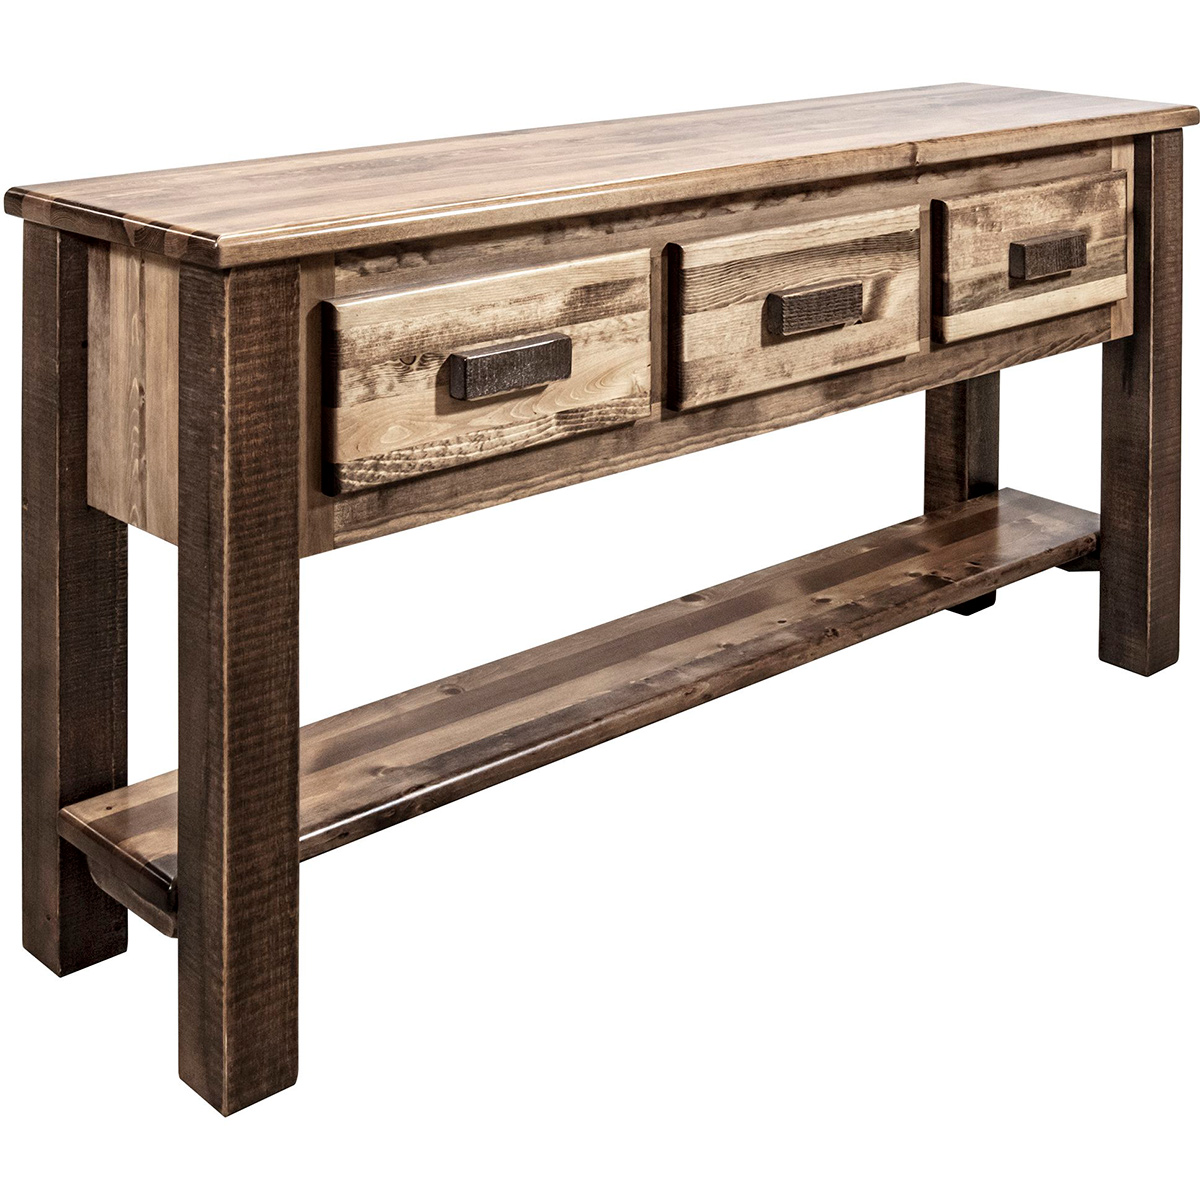 Ranchman's Console Table with 3 Drawers, Stain & Clear Lacquer Finish